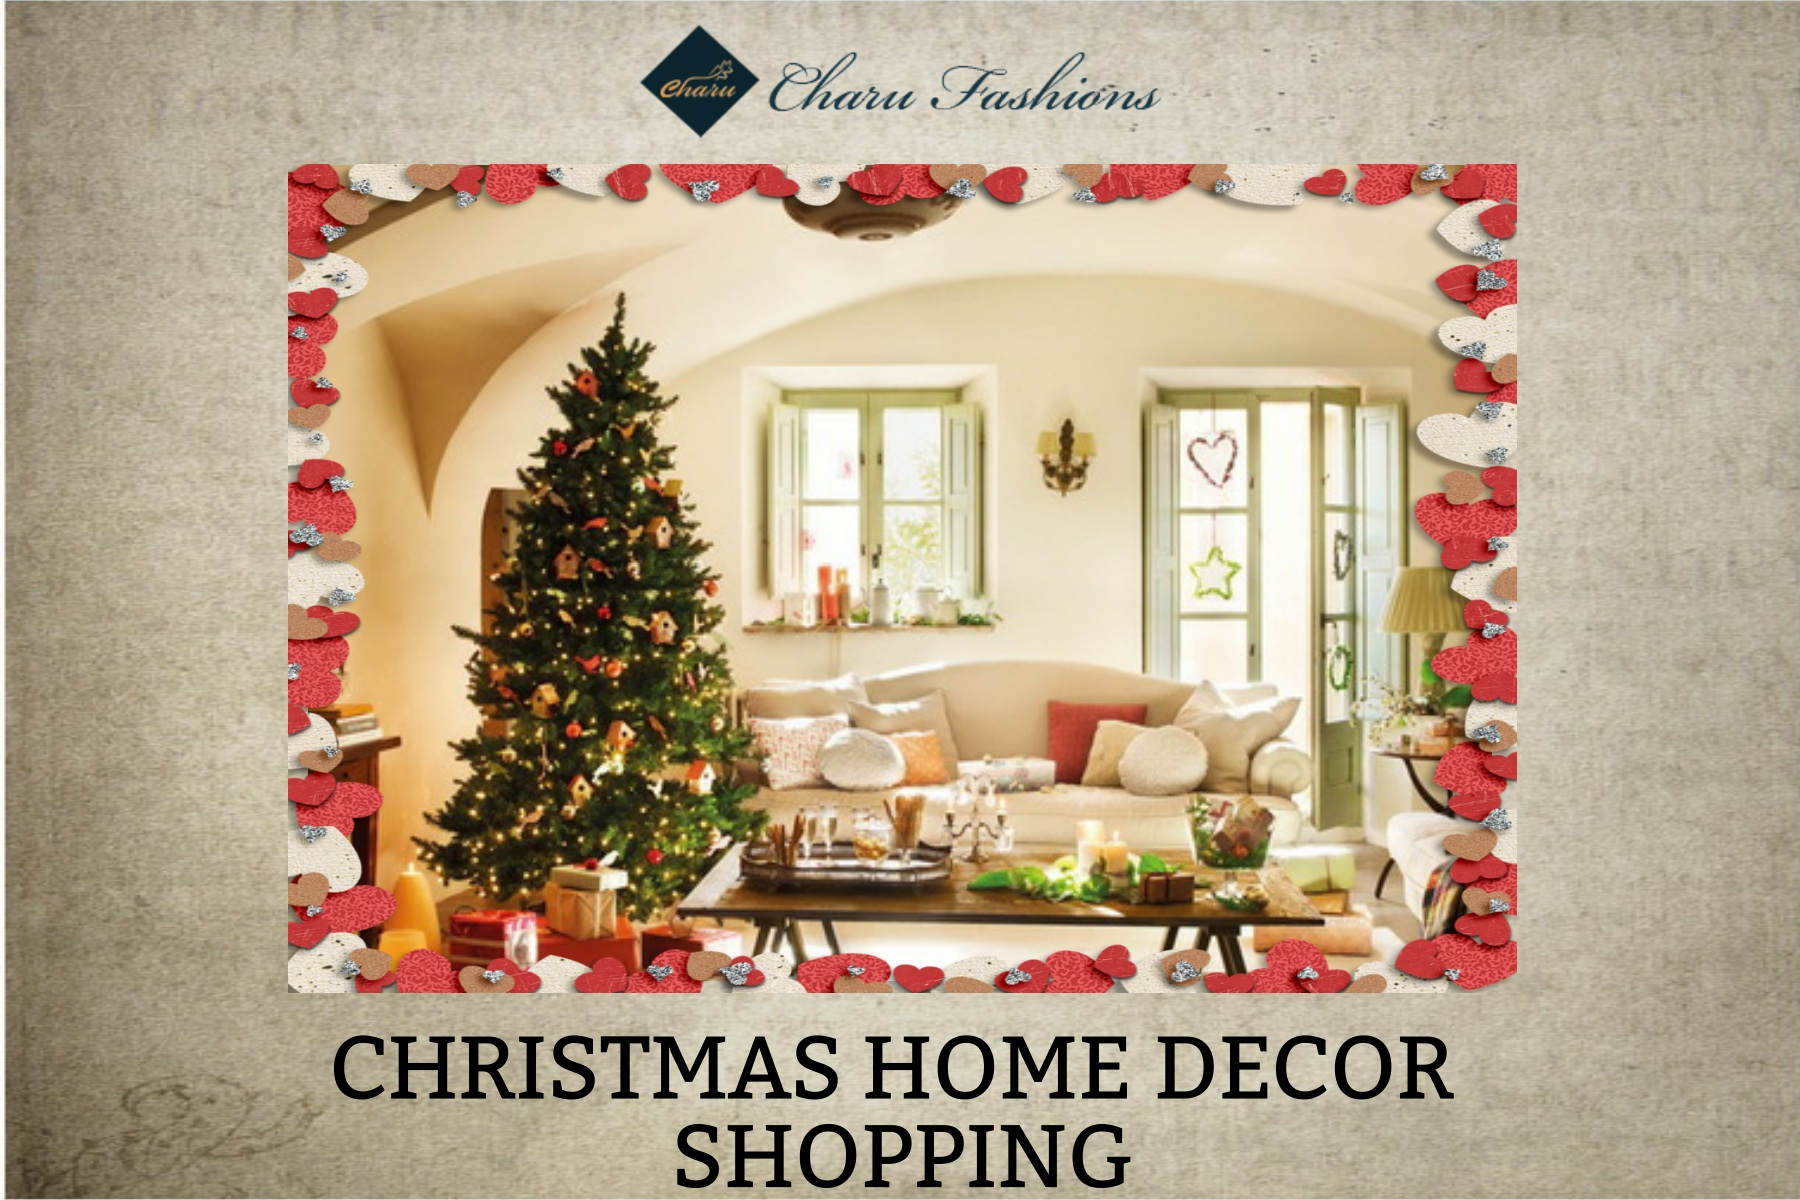 Christmas 2015 Wholesale Home Decor Items Charu Fashions Home Decorators Catalog Best Ideas of Home Decor and Design [homedecoratorscatalog.us]